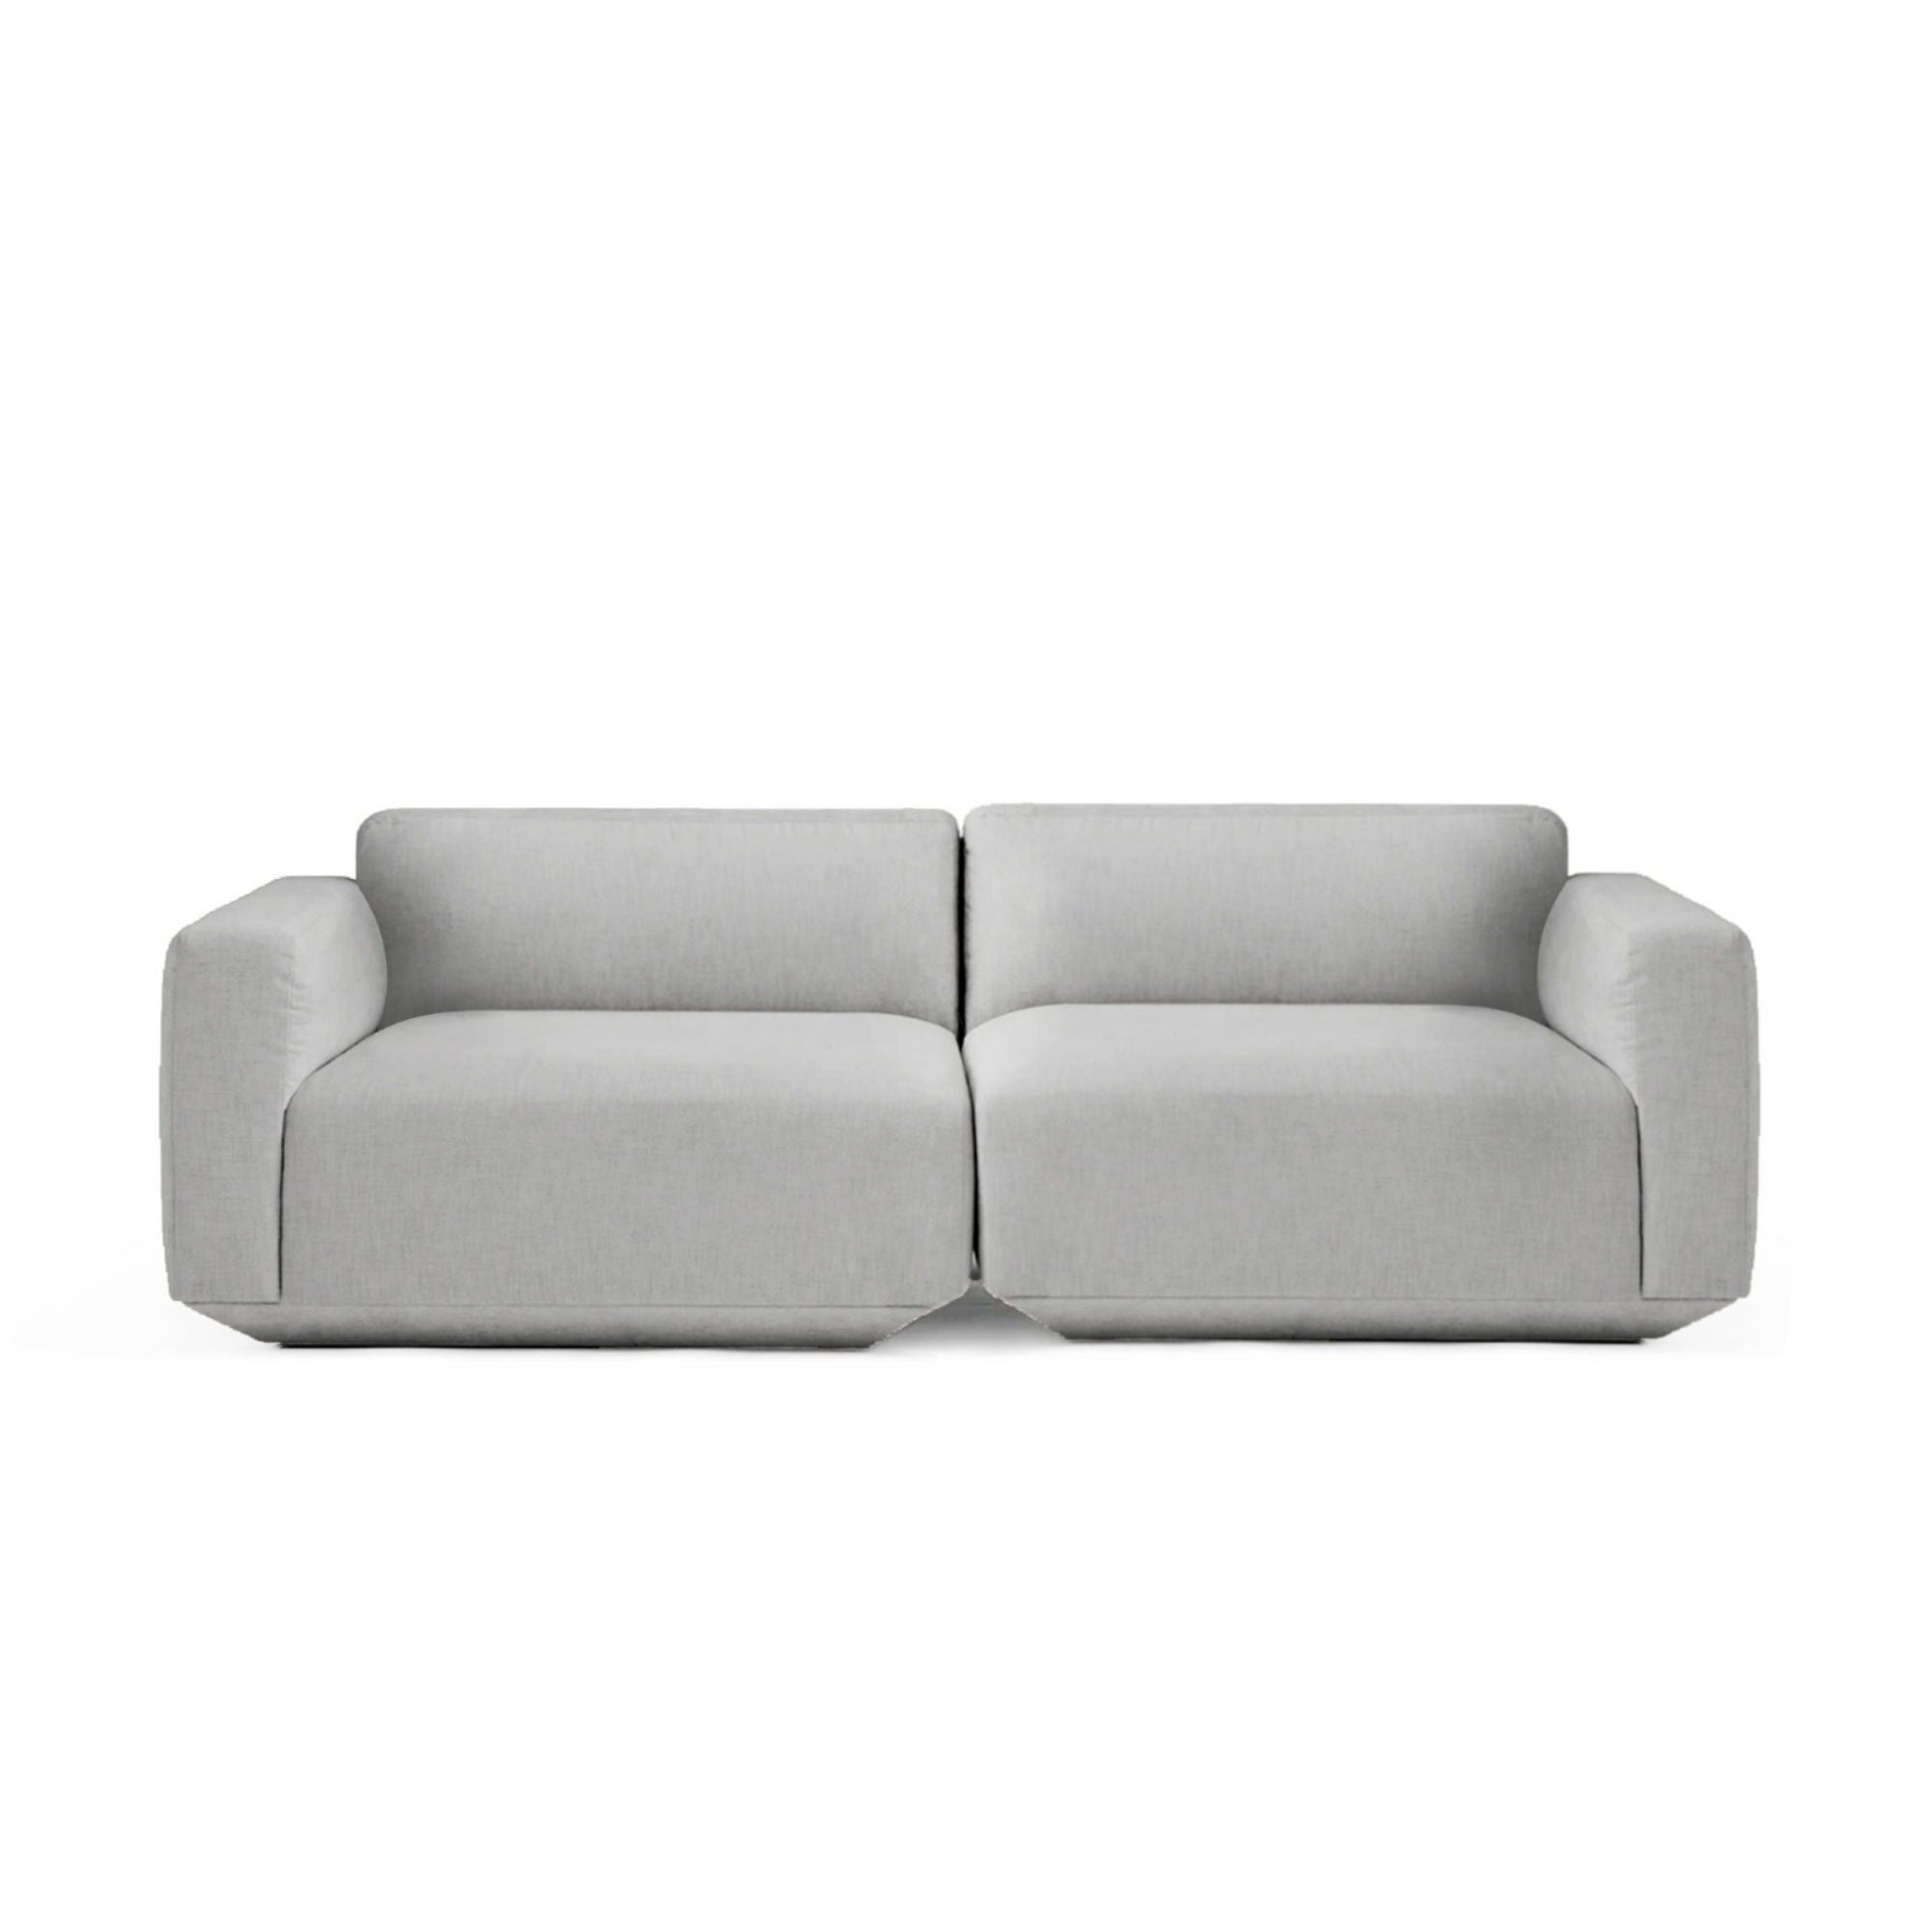 &Tradition Develius Sofa Configuration A , Linara Tweed 443